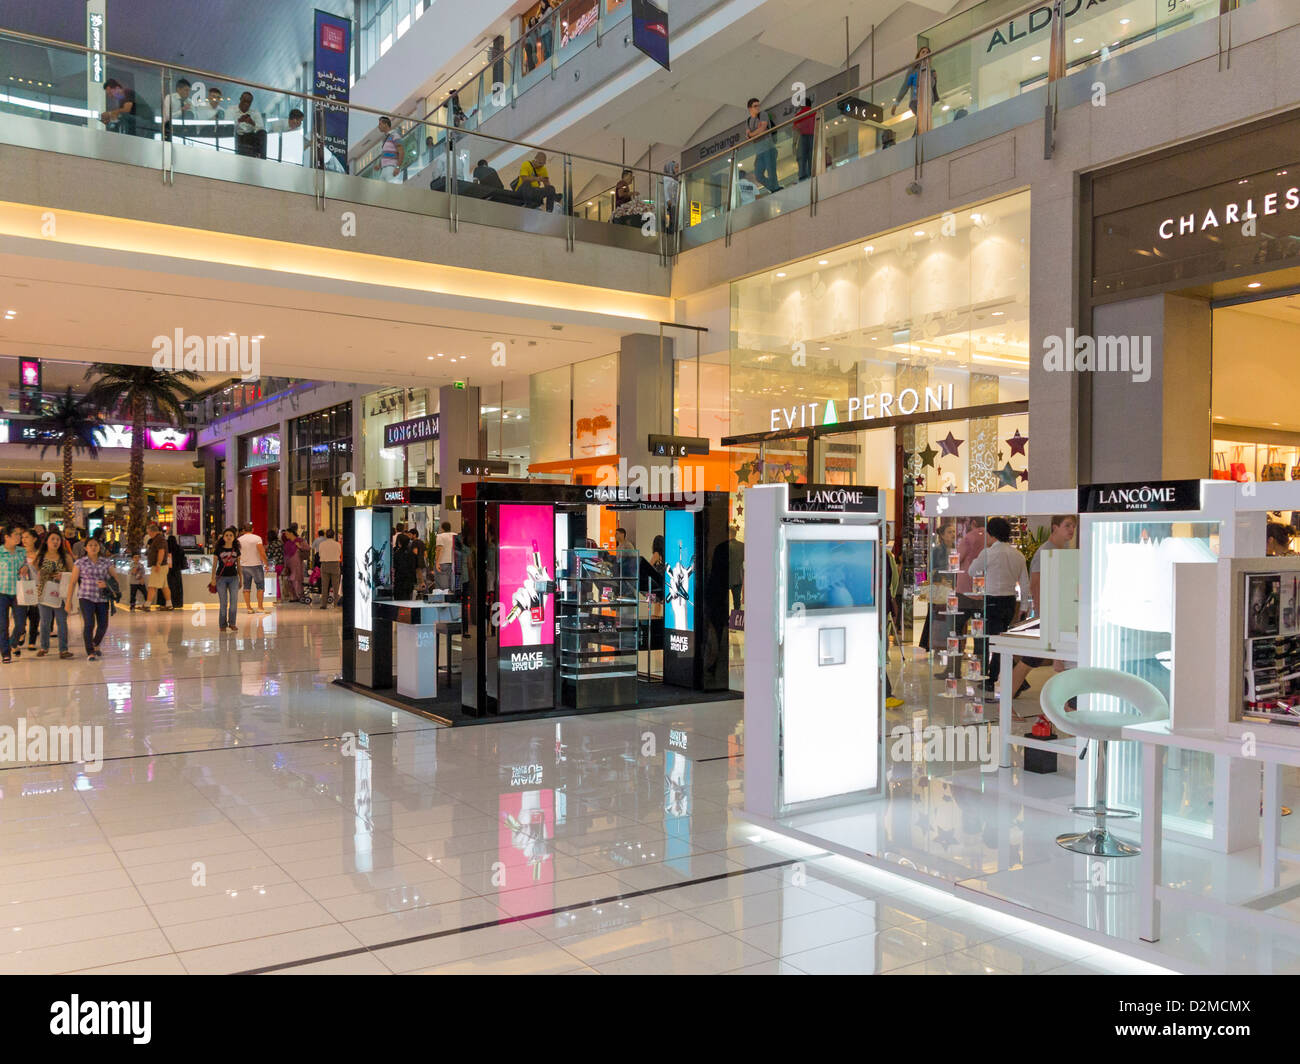 The Dubai Mall - The world's largest shopping mall, shopping centre - Stock Image